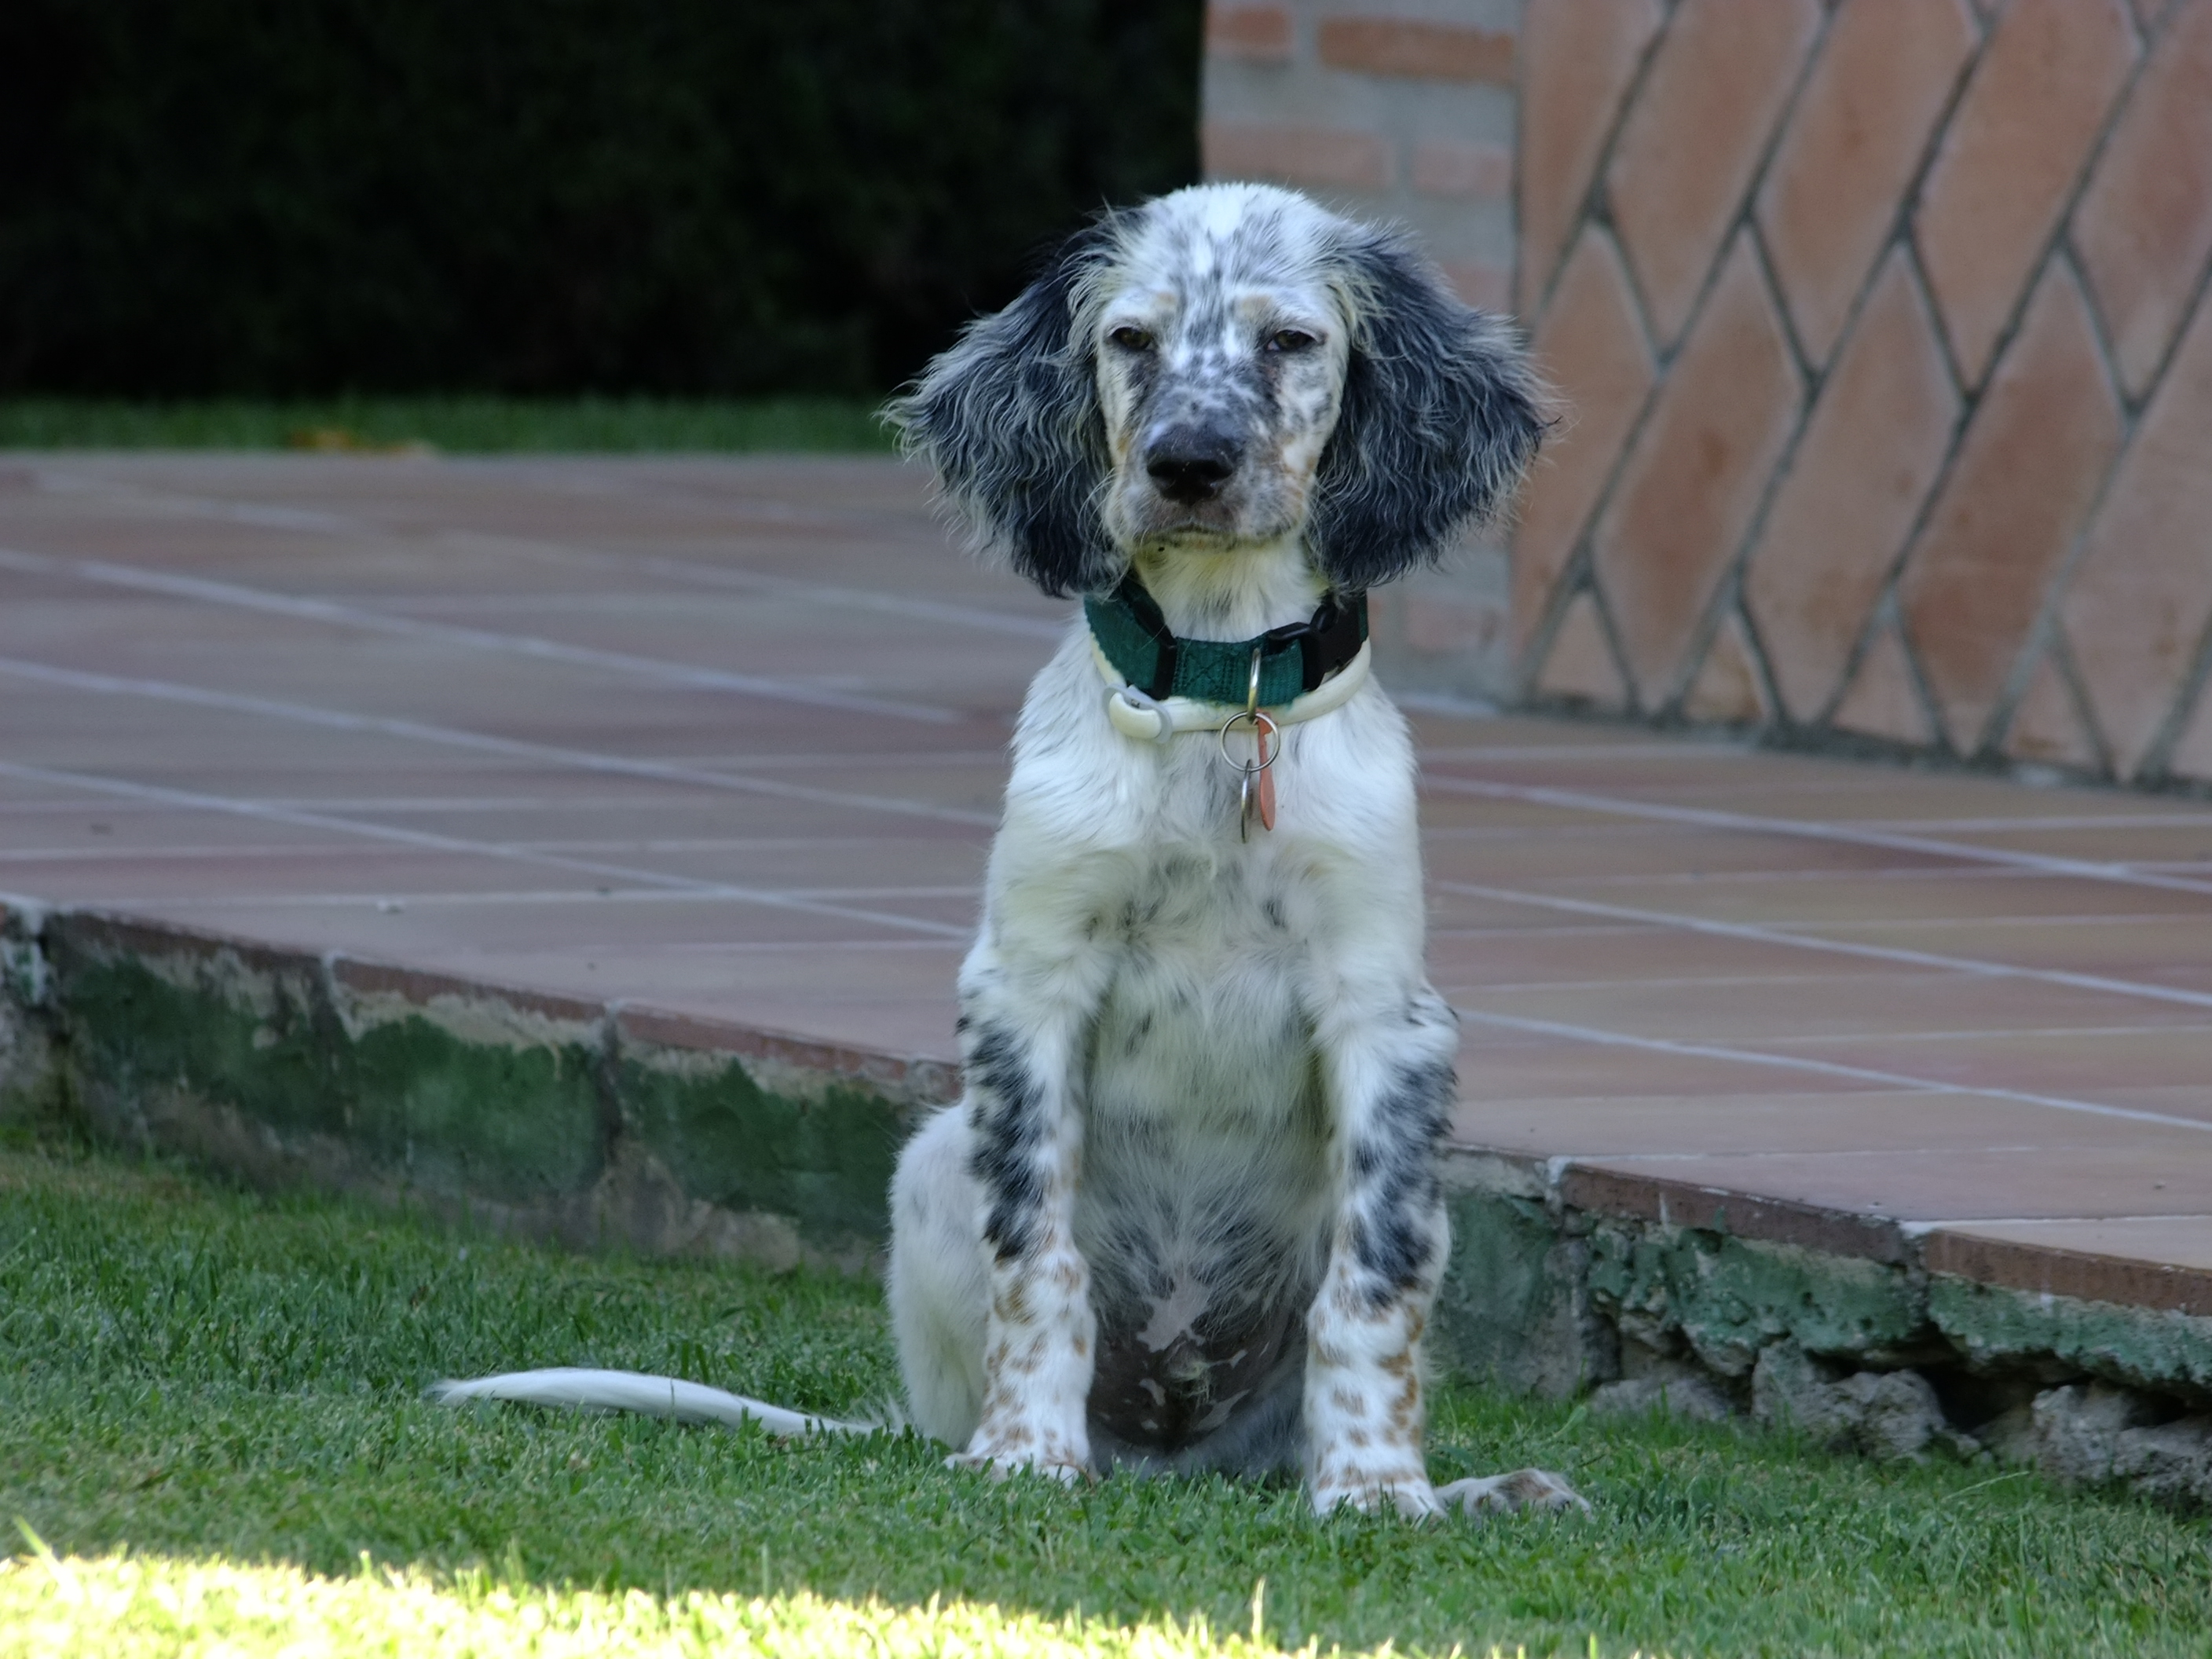 File:English Setter Spain.jpg - Wikimedia Commons